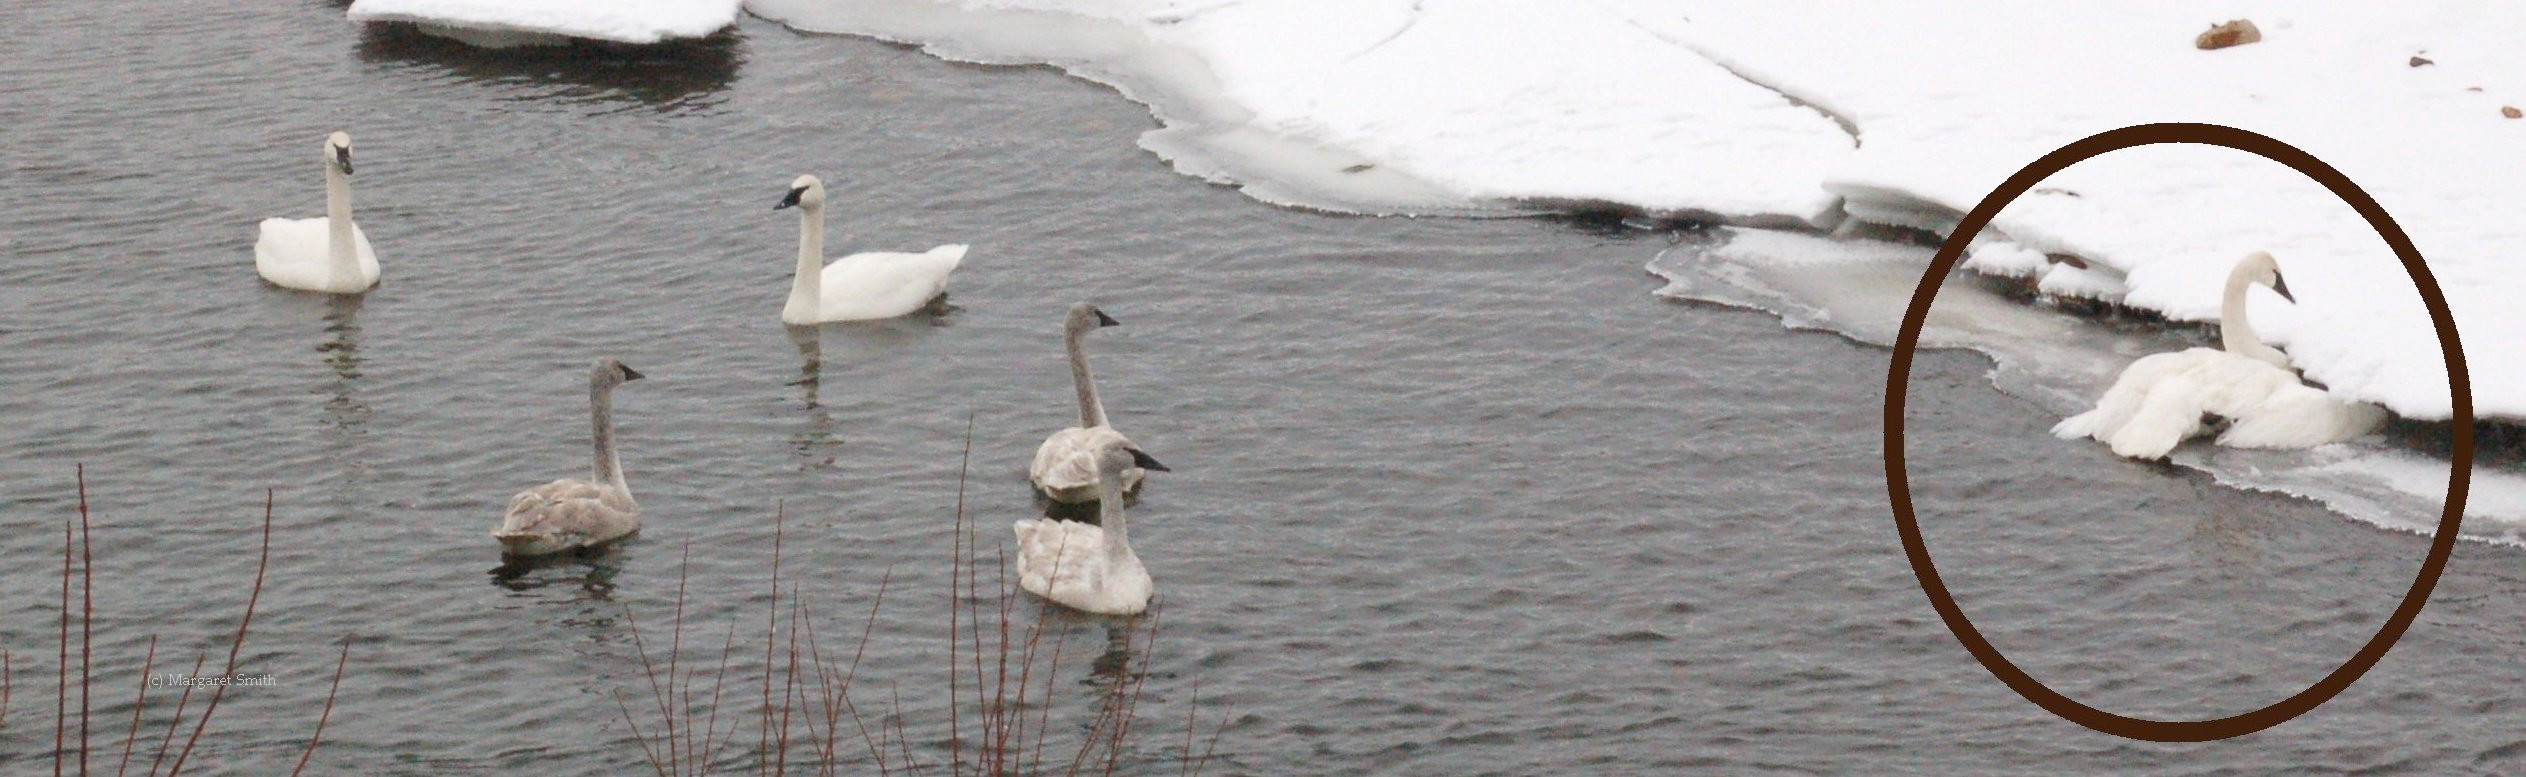 The Trumpeter Swan Society works on swan health issues, including lead poisoning and powerline collisions